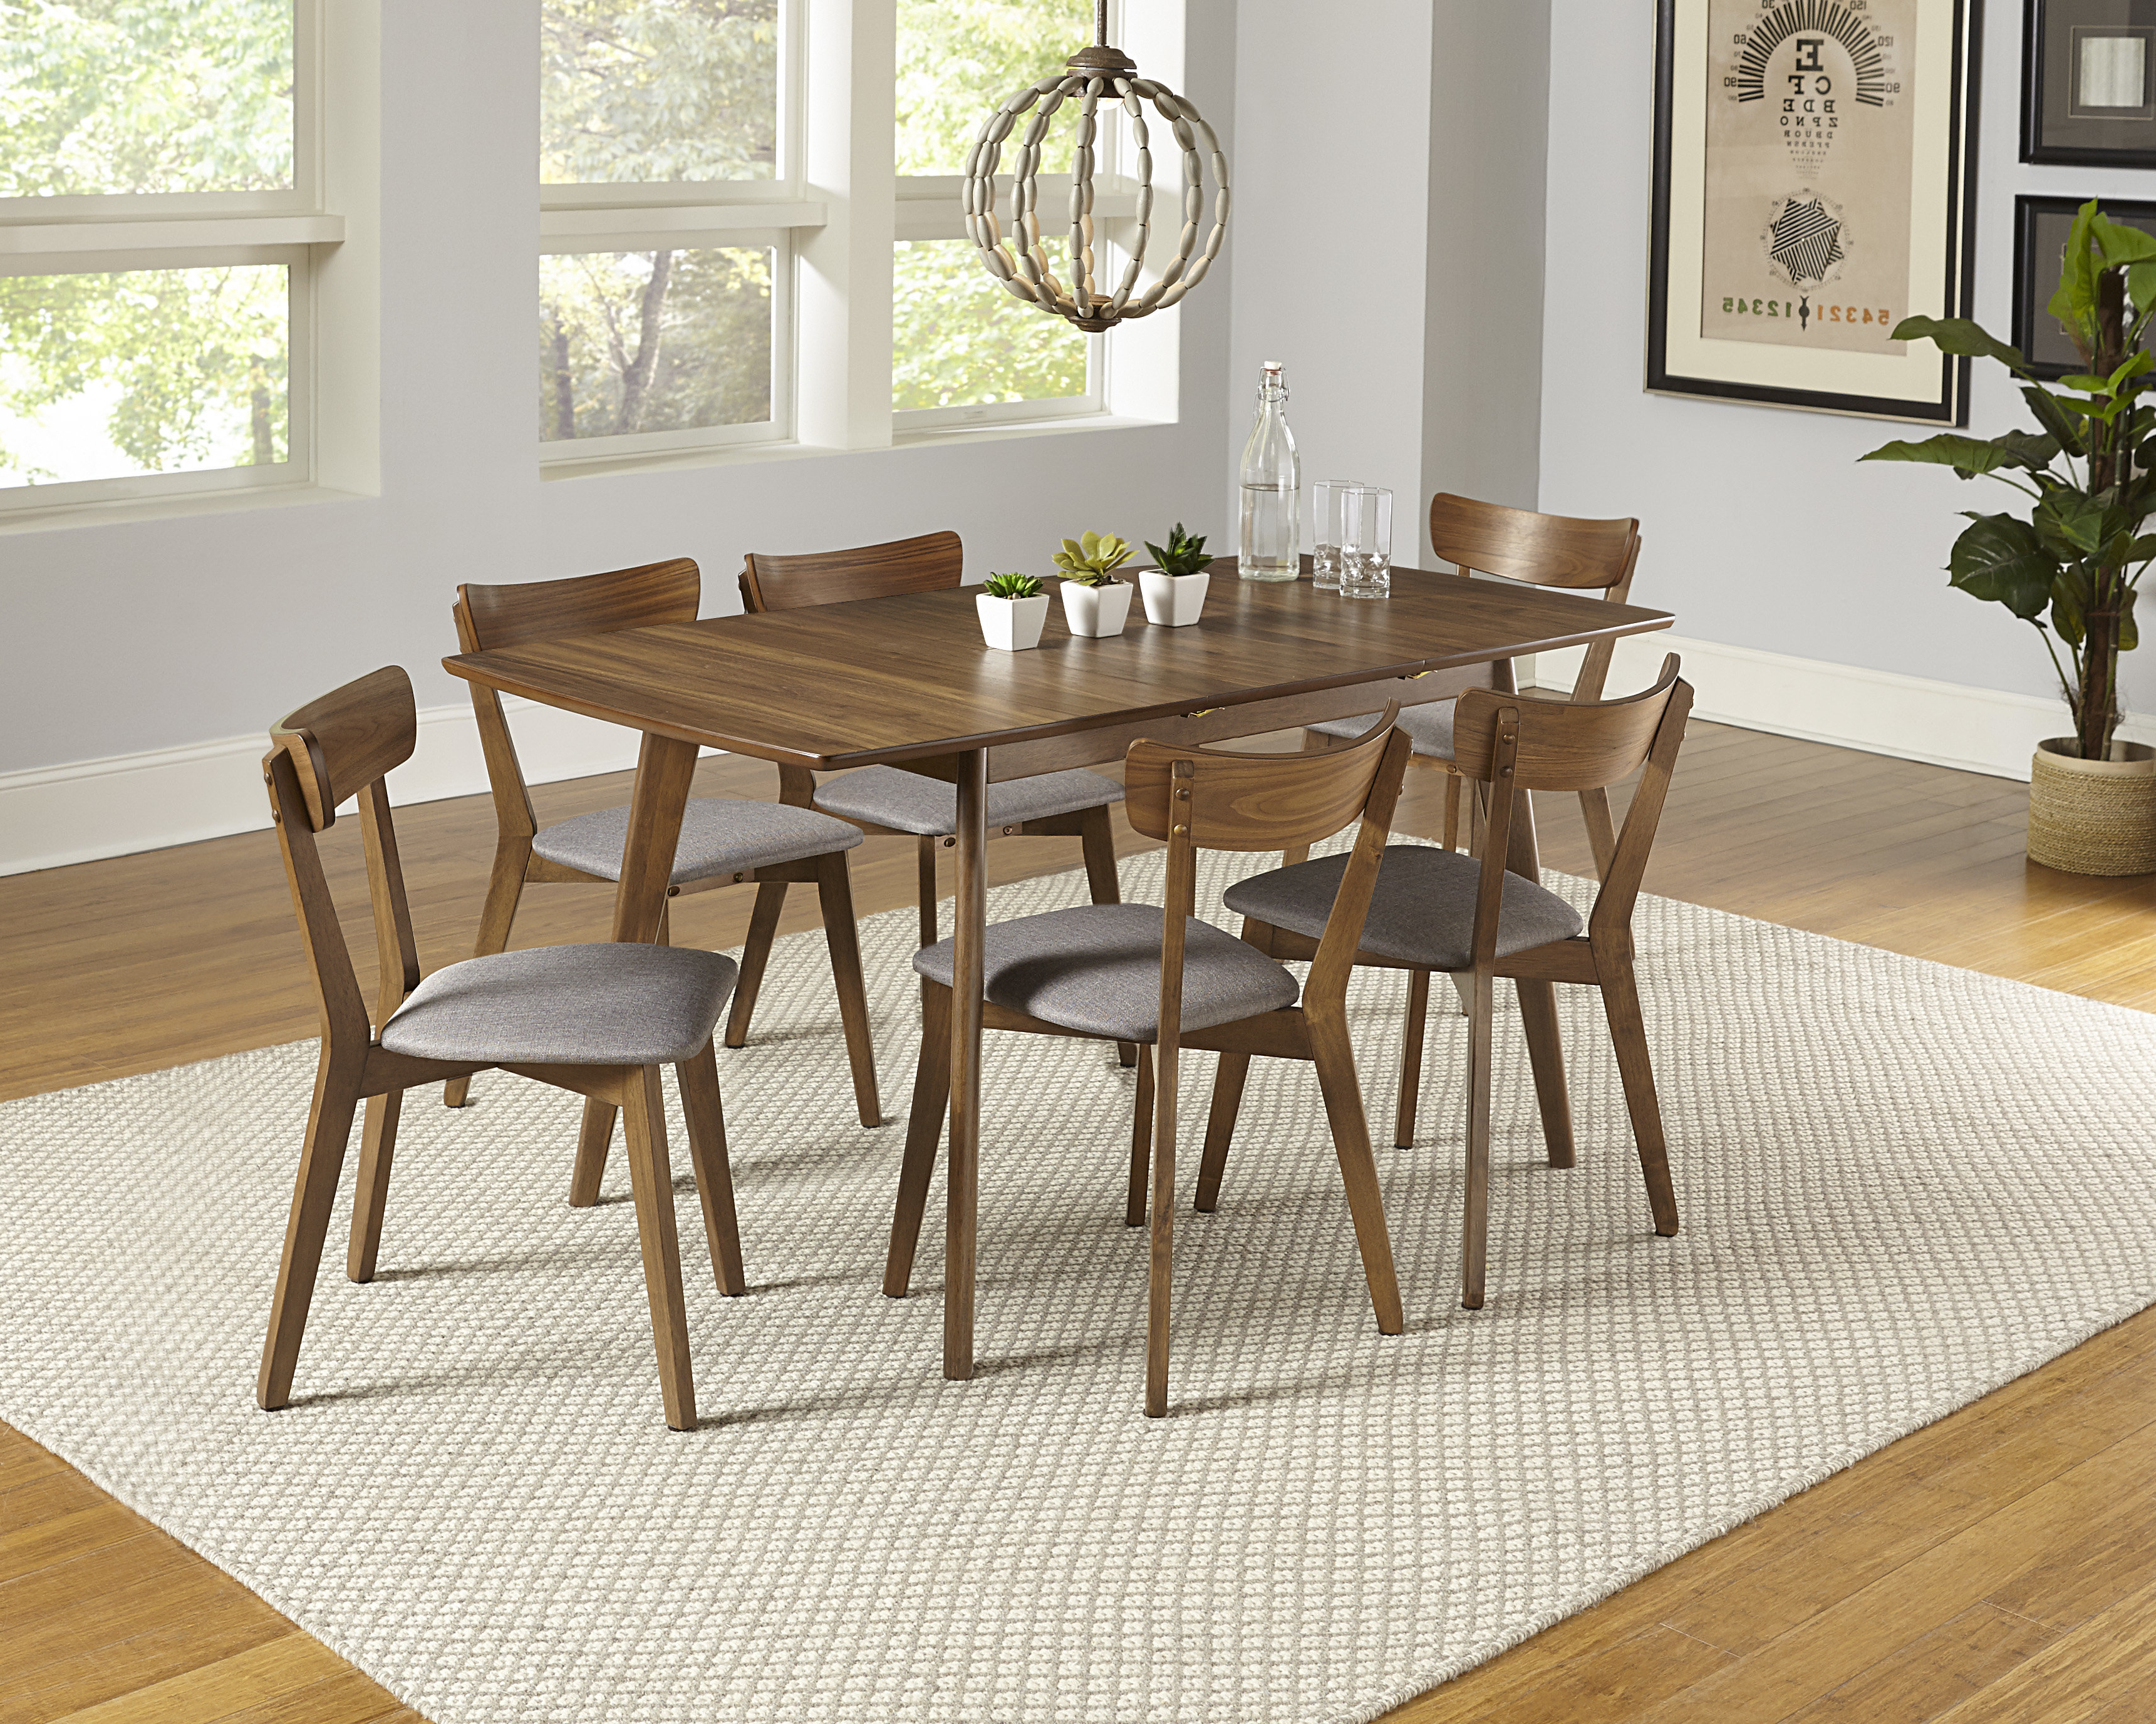 Frida 3 Piece Dining Table Sets With Latest Rockaway 7 Piece Extendable Solid Wood Dining Set (Gallery 9 of 20)